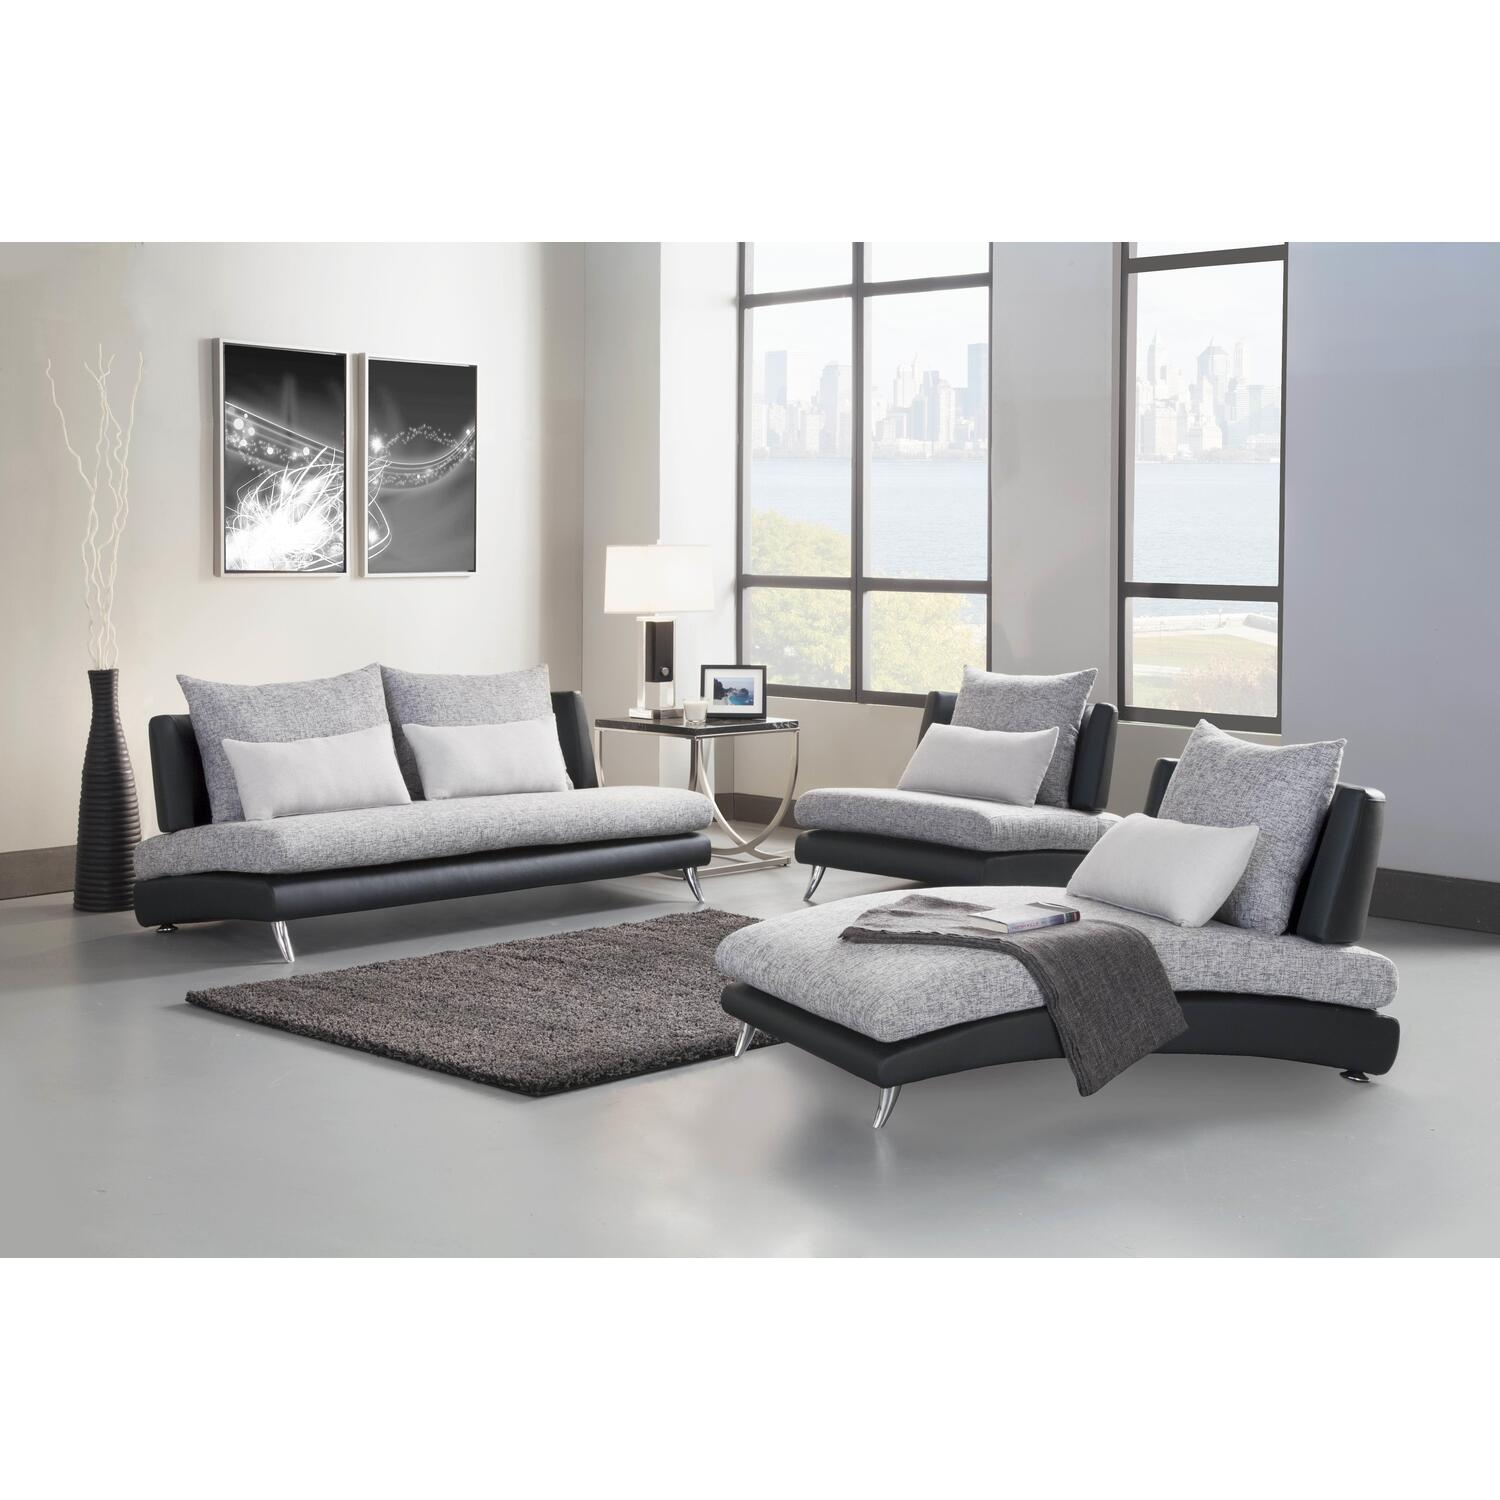 homelegance renton living room set by oj commerce 1 1 907